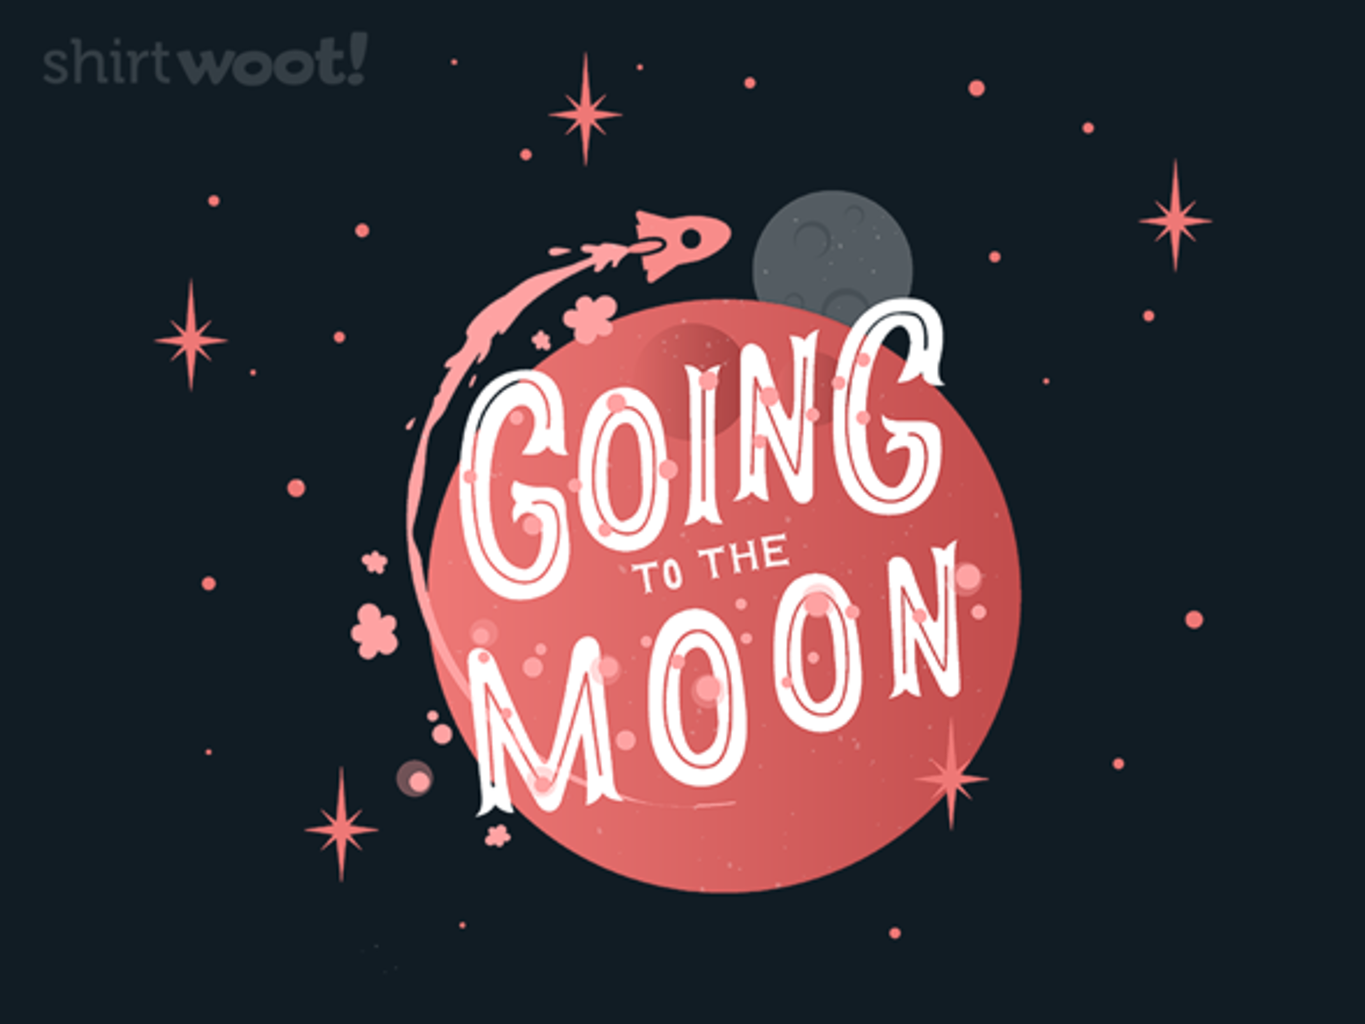 Woot!: Going to the Moon